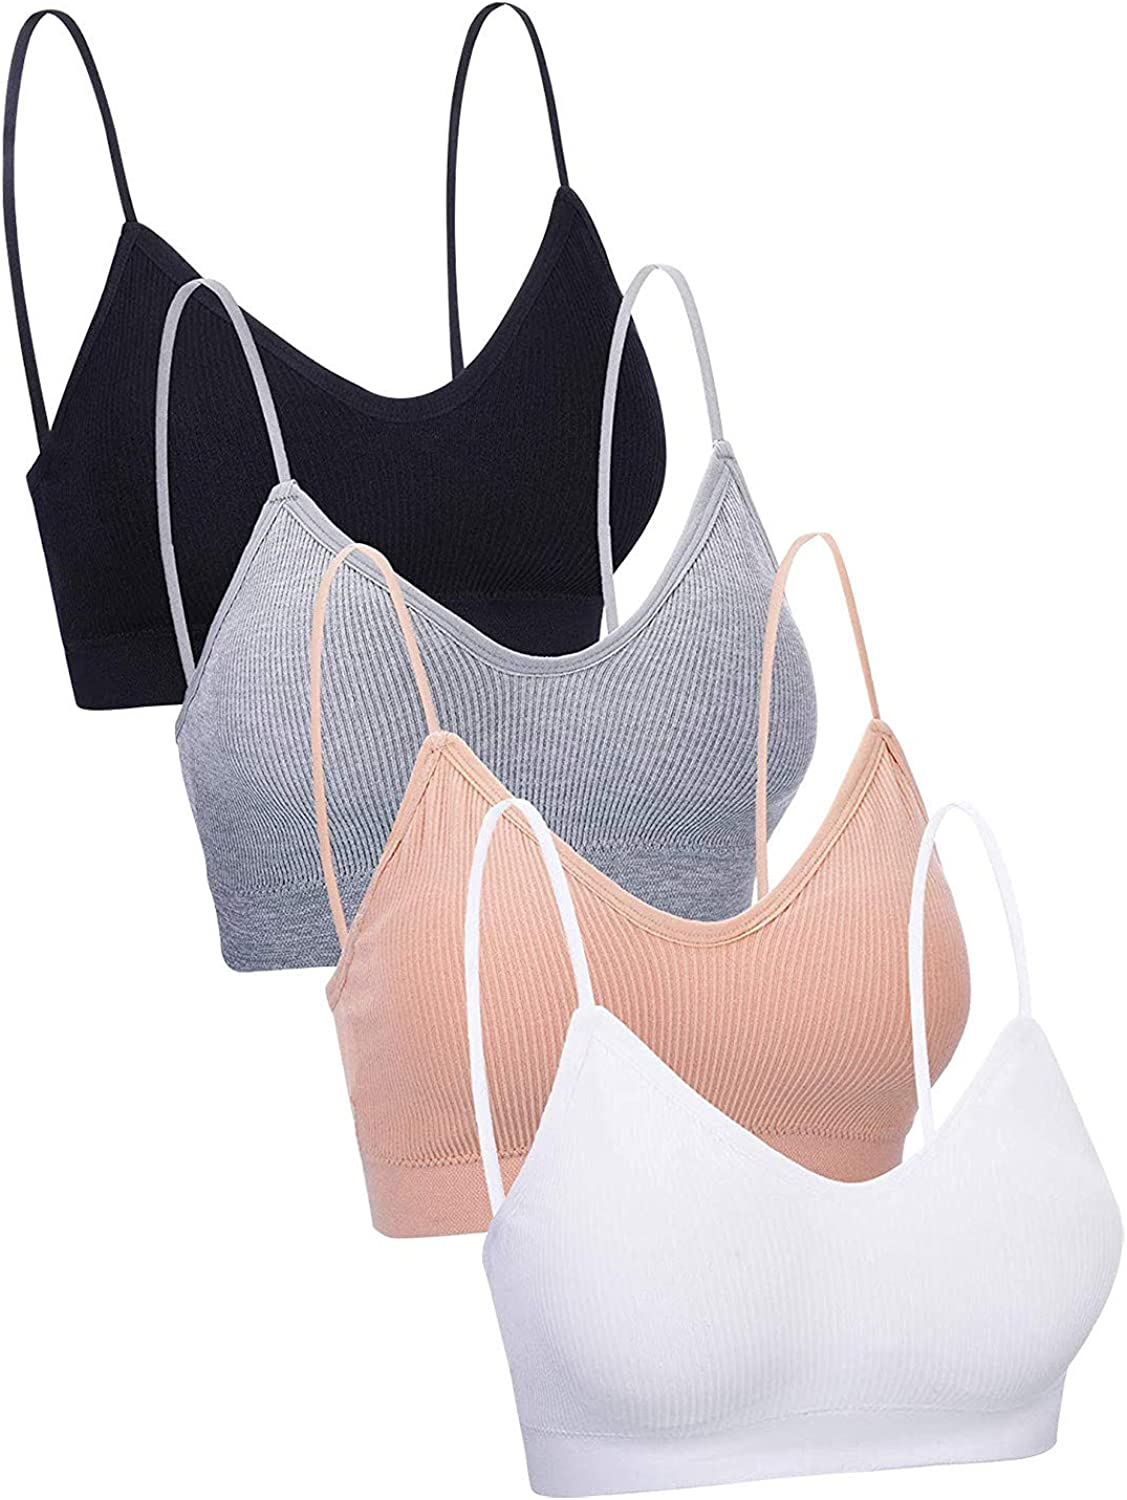 4 Pieces Bra V Neck Seamless Padded Camisole Bandeau Sports Casual Underwear Intimates Lingerie Sleepwear for Women